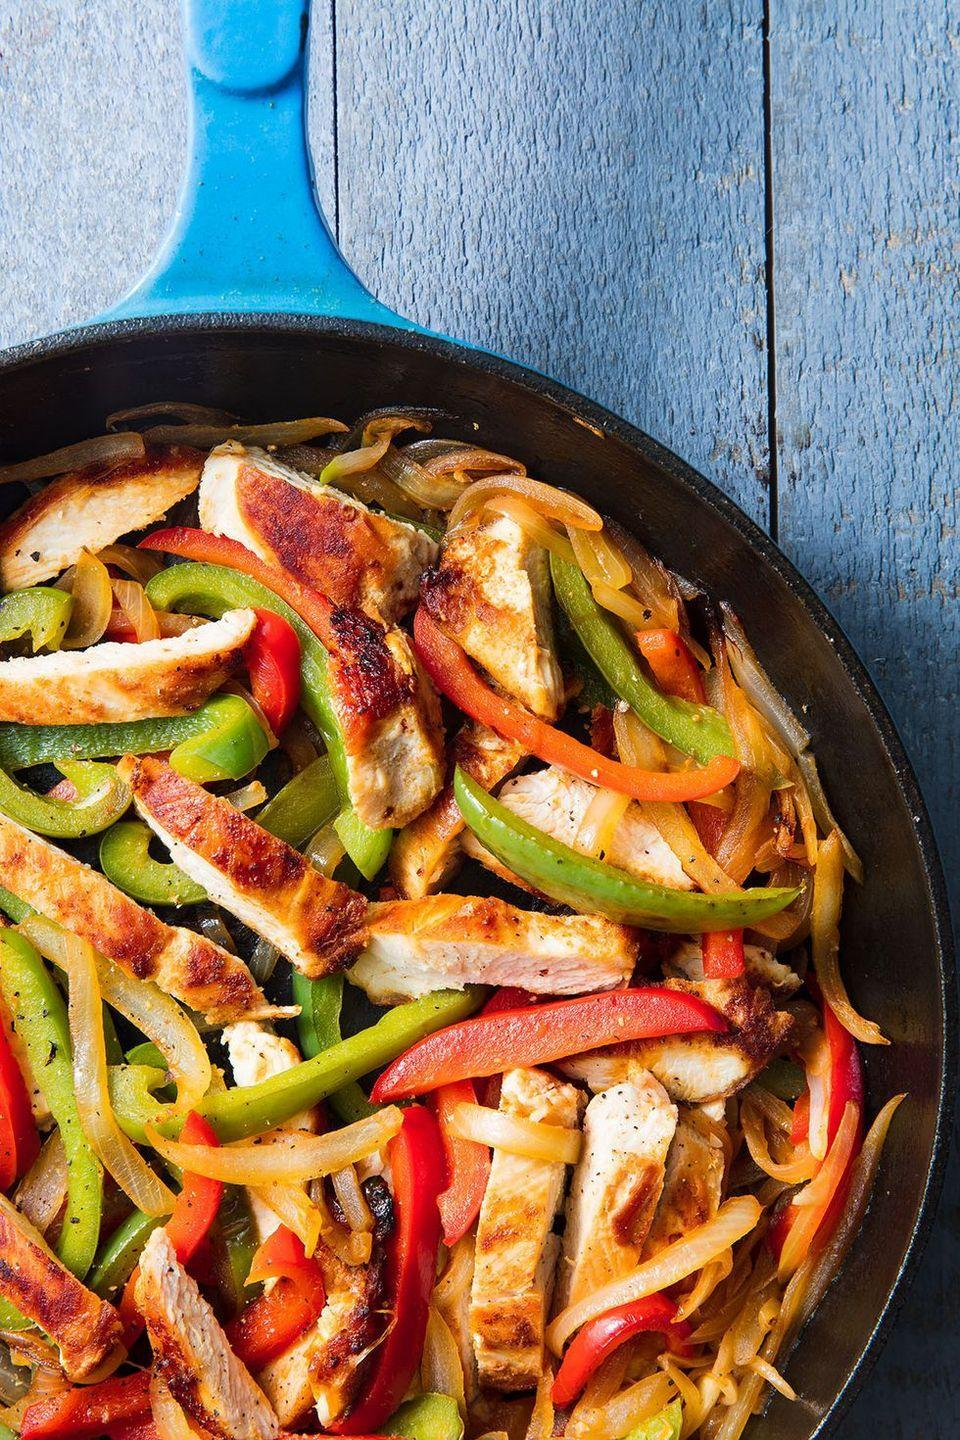 """<p>Fajitas are the perfect <a href=""""https://www.delish.com/uk/cooking/recipes/g32768299/easy-dinner-recipes/"""" rel=""""nofollow noopener"""" target=""""_blank"""" data-ylk=""""slk:weeknight dinner"""" class=""""link rapid-noclick-resp"""">weeknight dinner</a>. Minimal prep and minimal cook time means these can be on your table FAST.</p><p>Get the <a href=""""https://www.delish.com/uk/cooking/recipes/a30146397/easy-chicken-fajitas-recipe/"""" rel=""""nofollow noopener"""" target=""""_blank"""" data-ylk=""""slk:Chicken Fajitas"""" class=""""link rapid-noclick-resp"""">Chicken Fajitas</a> recipe.</p>"""